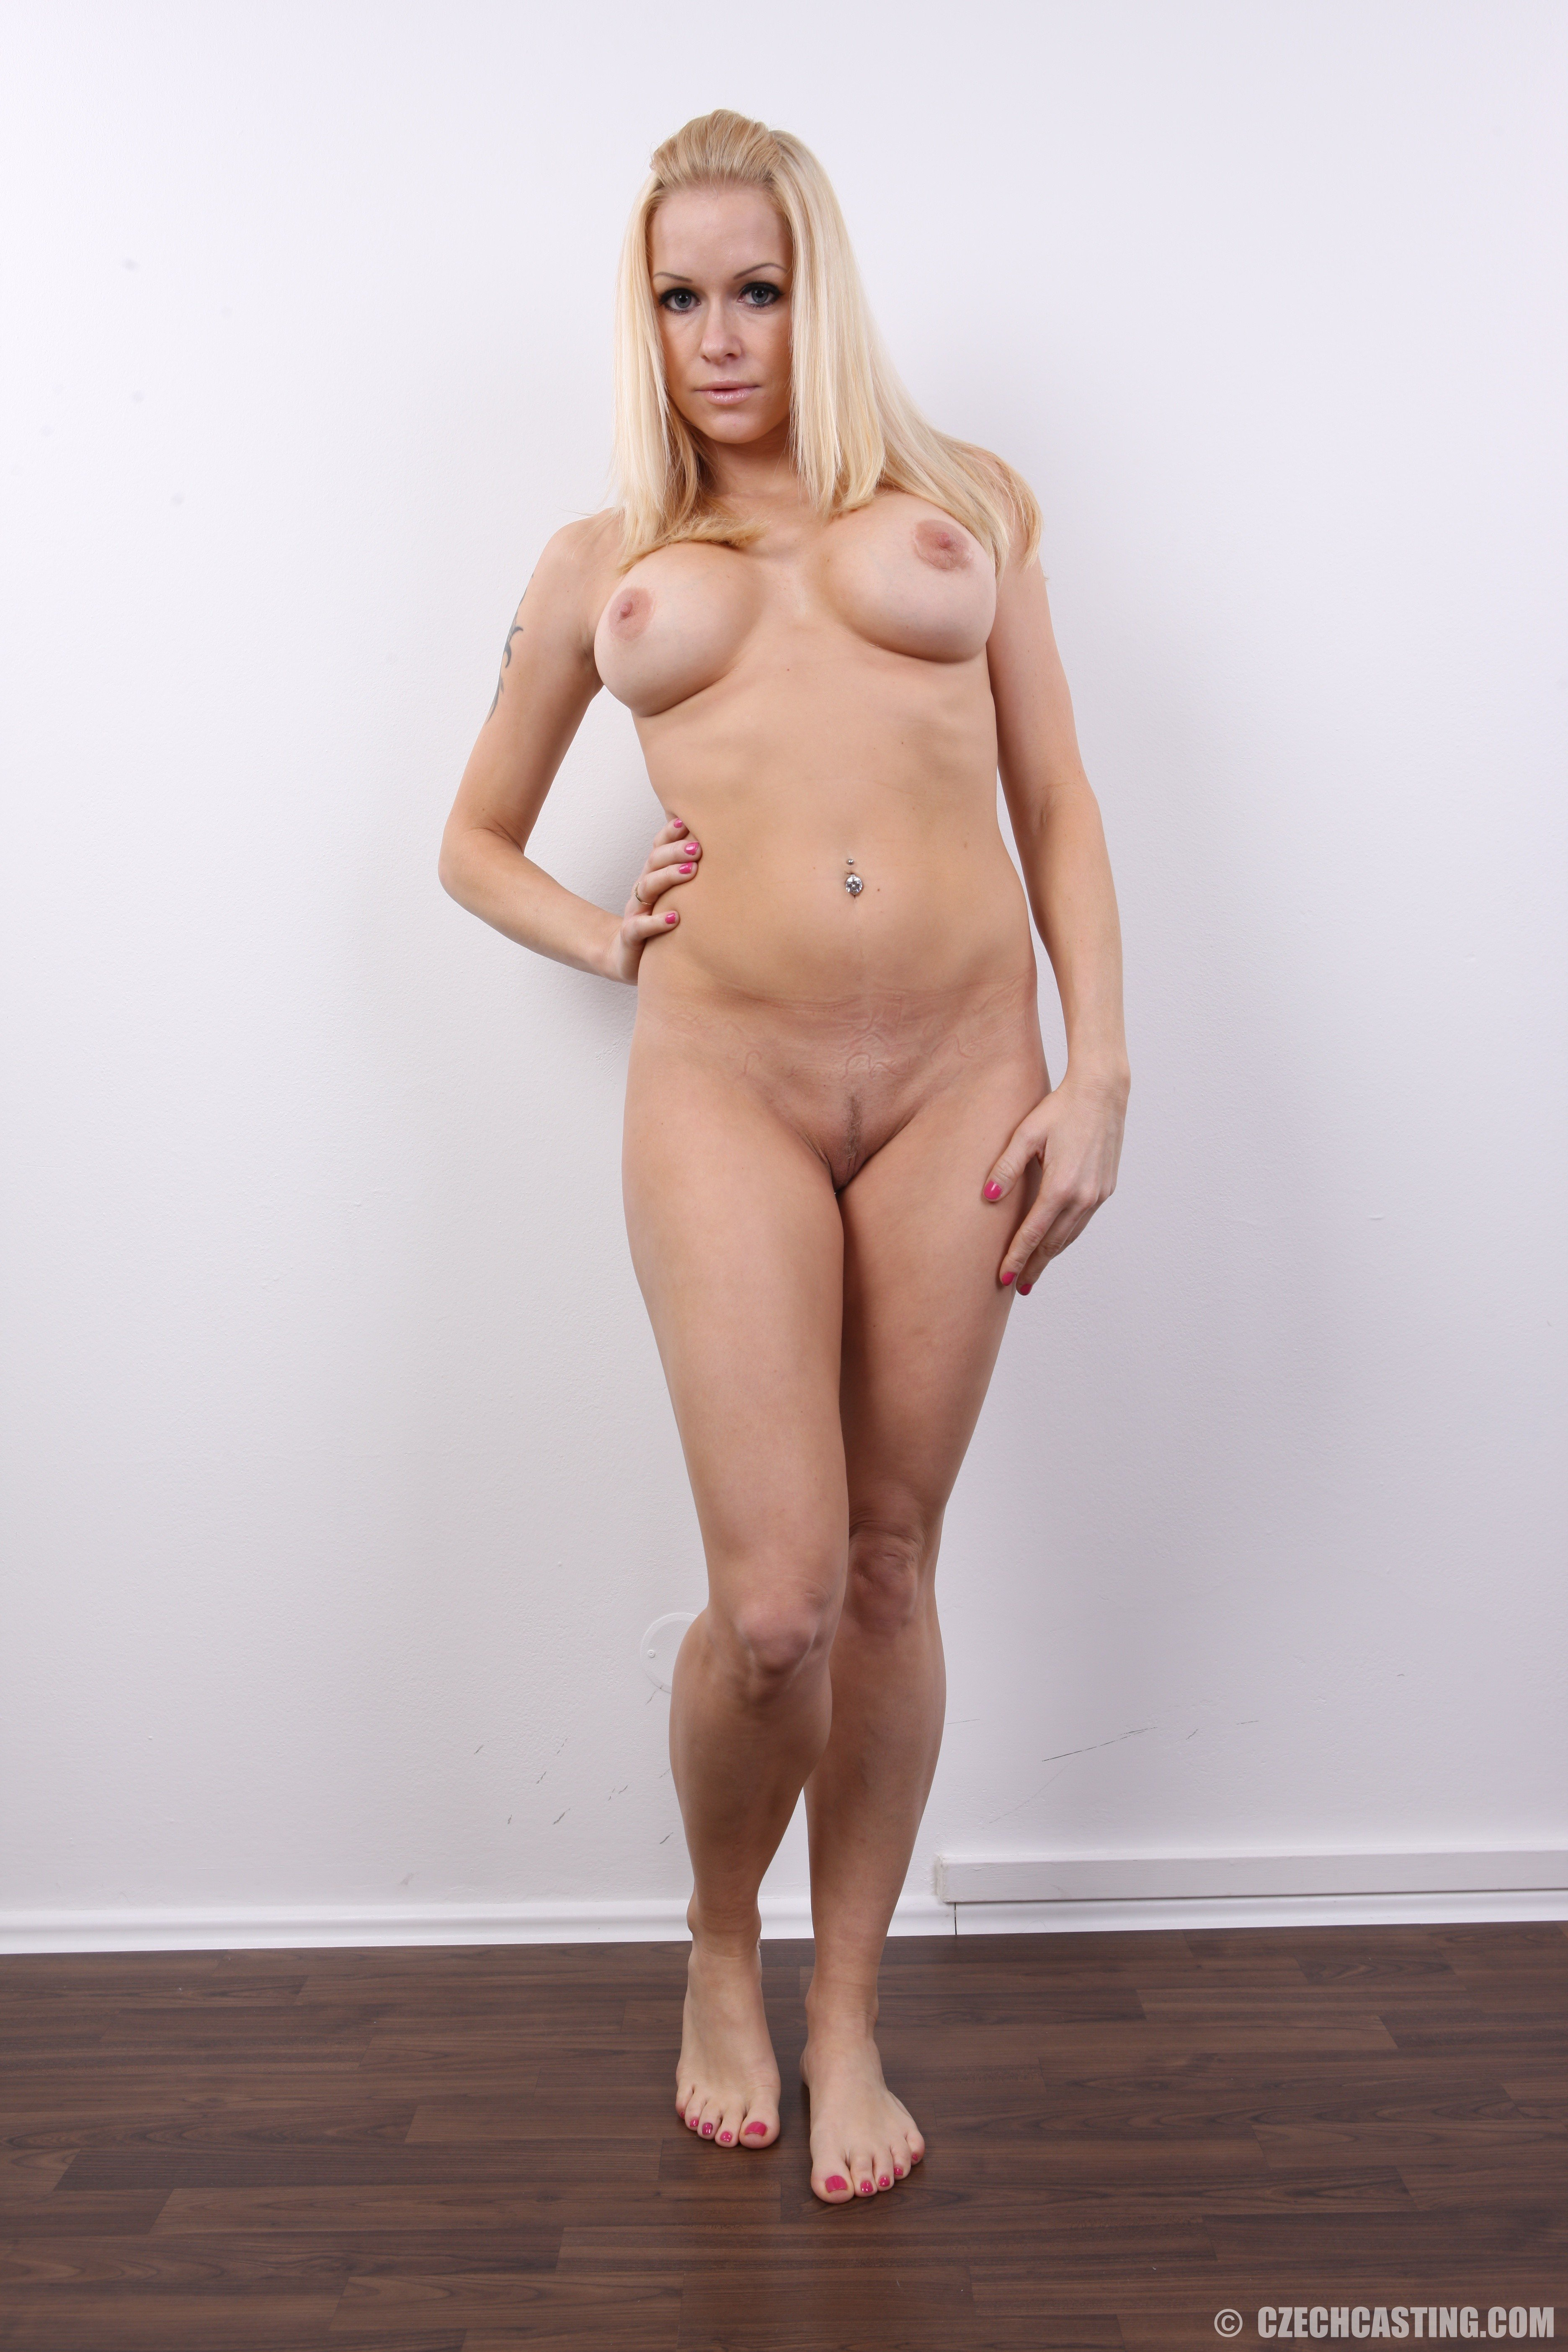 Topless Czech Casting Nude Pic